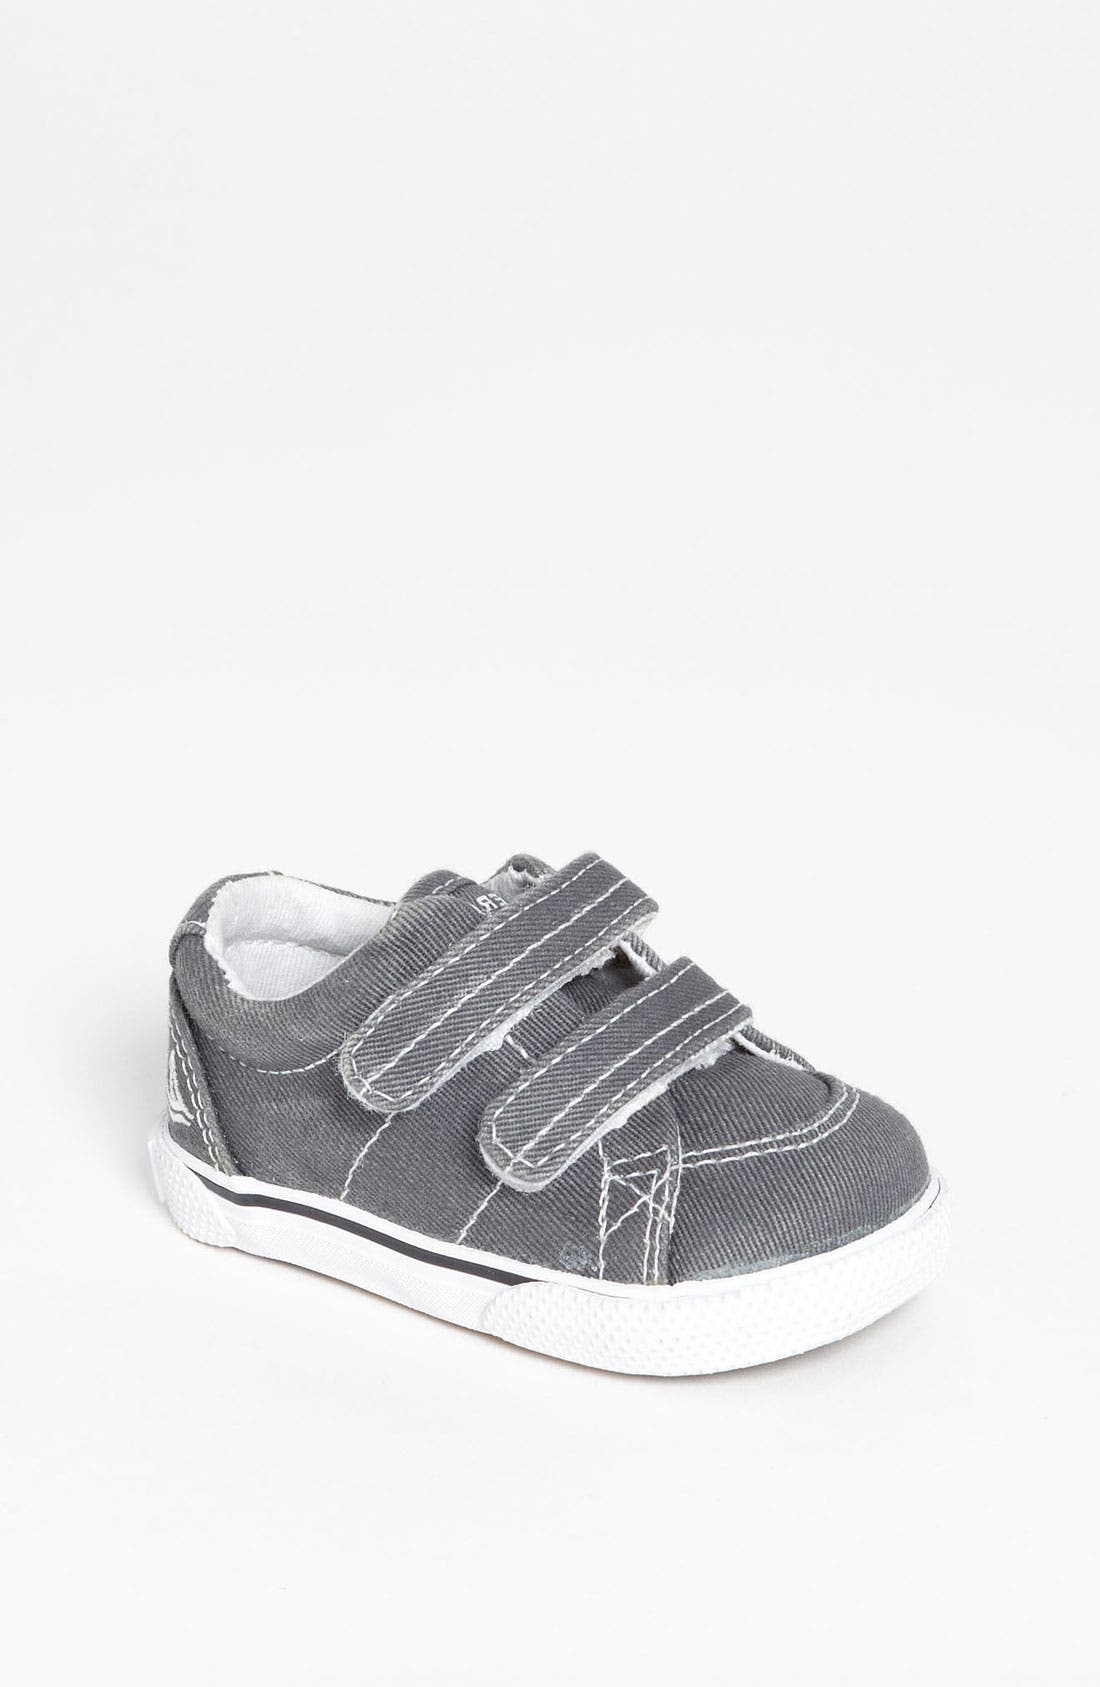 Main Image - Sperry Kids 'Halyard' Crib Shoe (Baby)